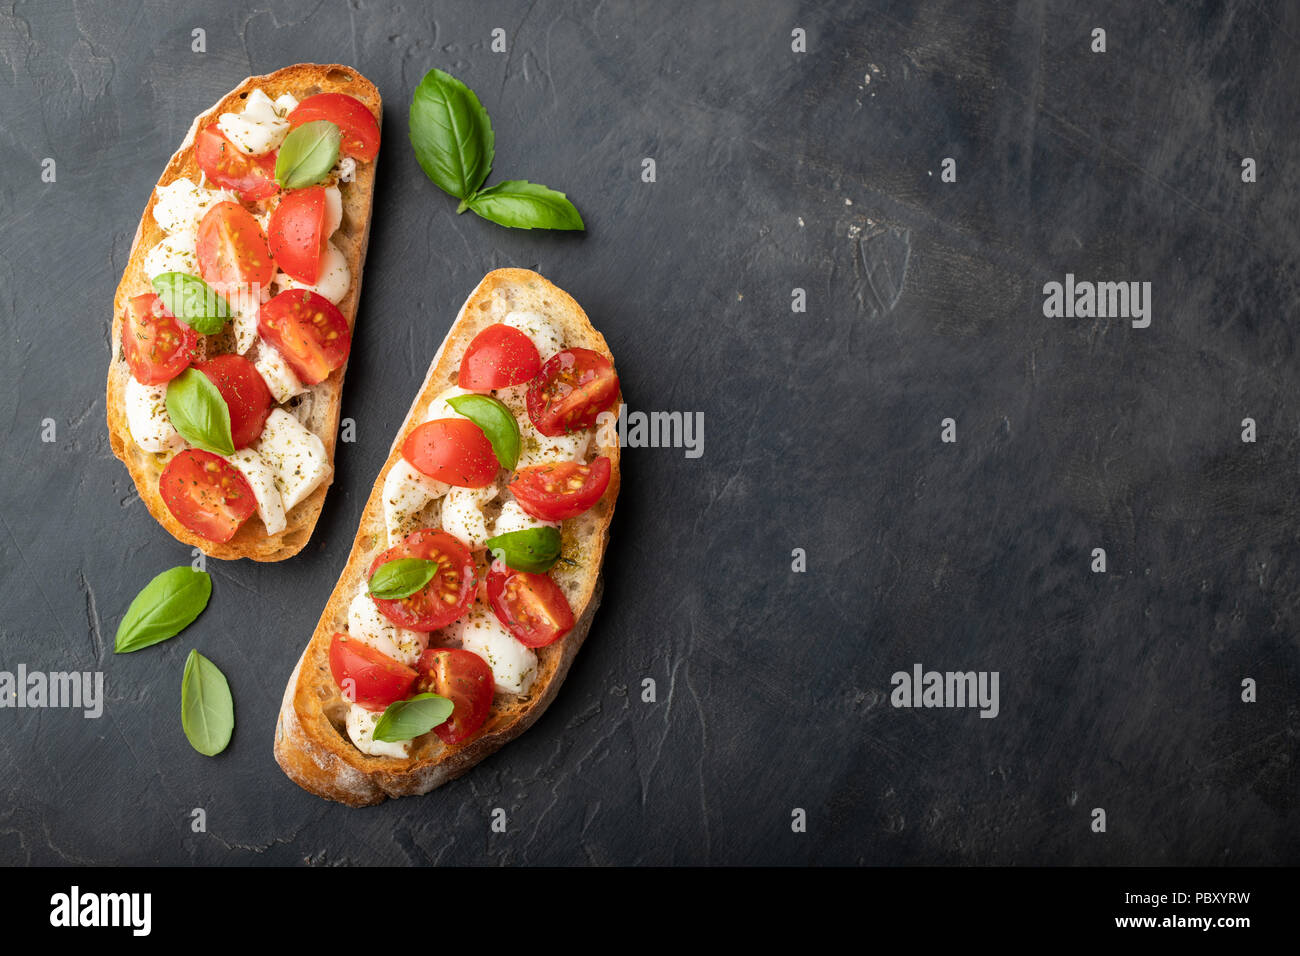 Bruschetta with tomatoes, mozzarella cheese and basil on a black background. Traditional italian appetizer or snack, antipasto. Top view with copy spa - Stock Image